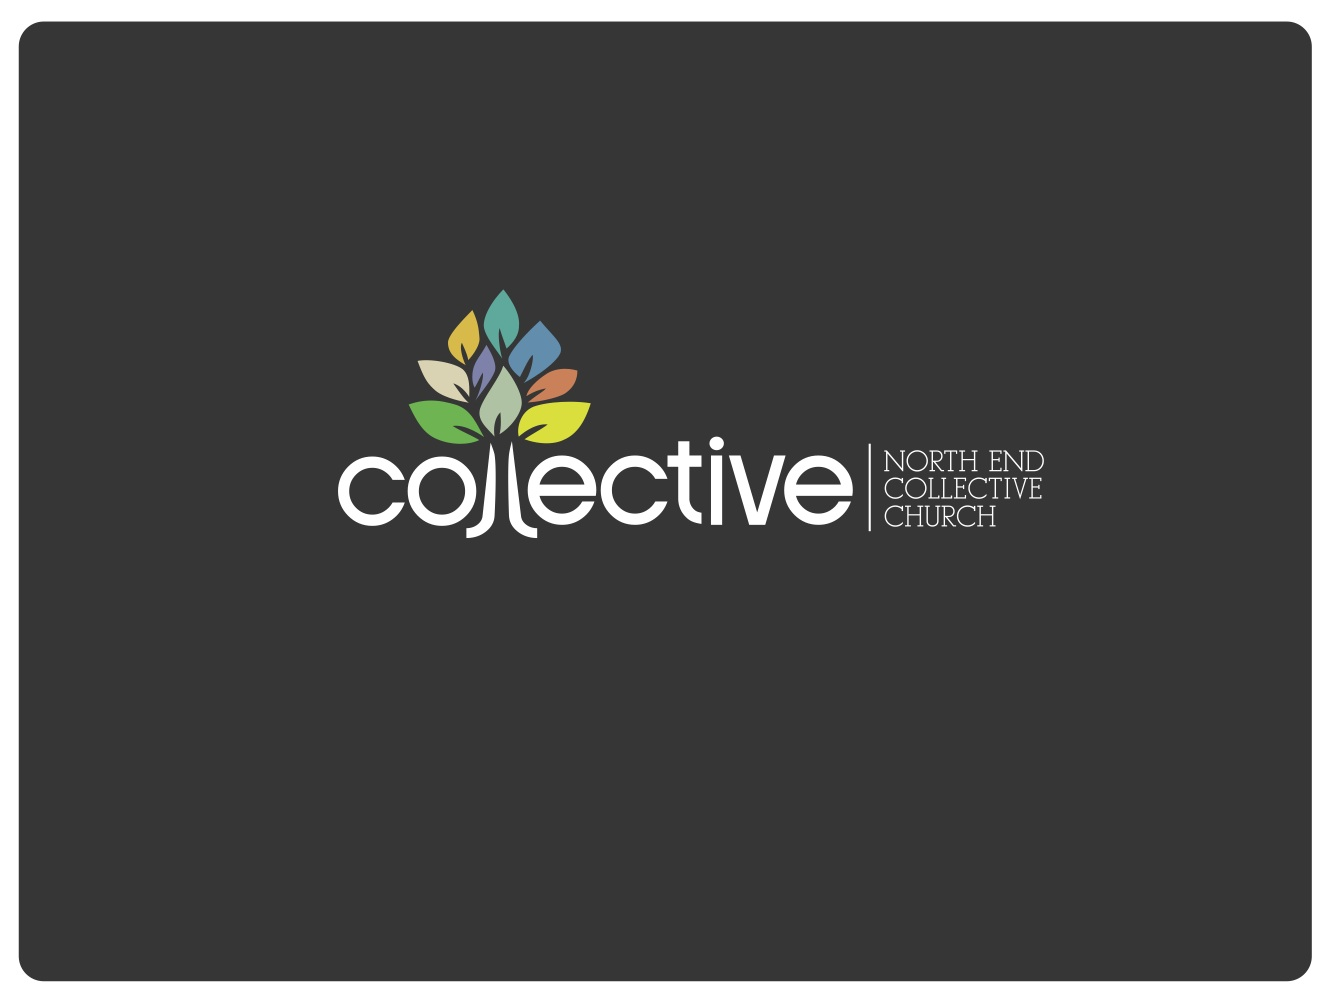 northendcollective